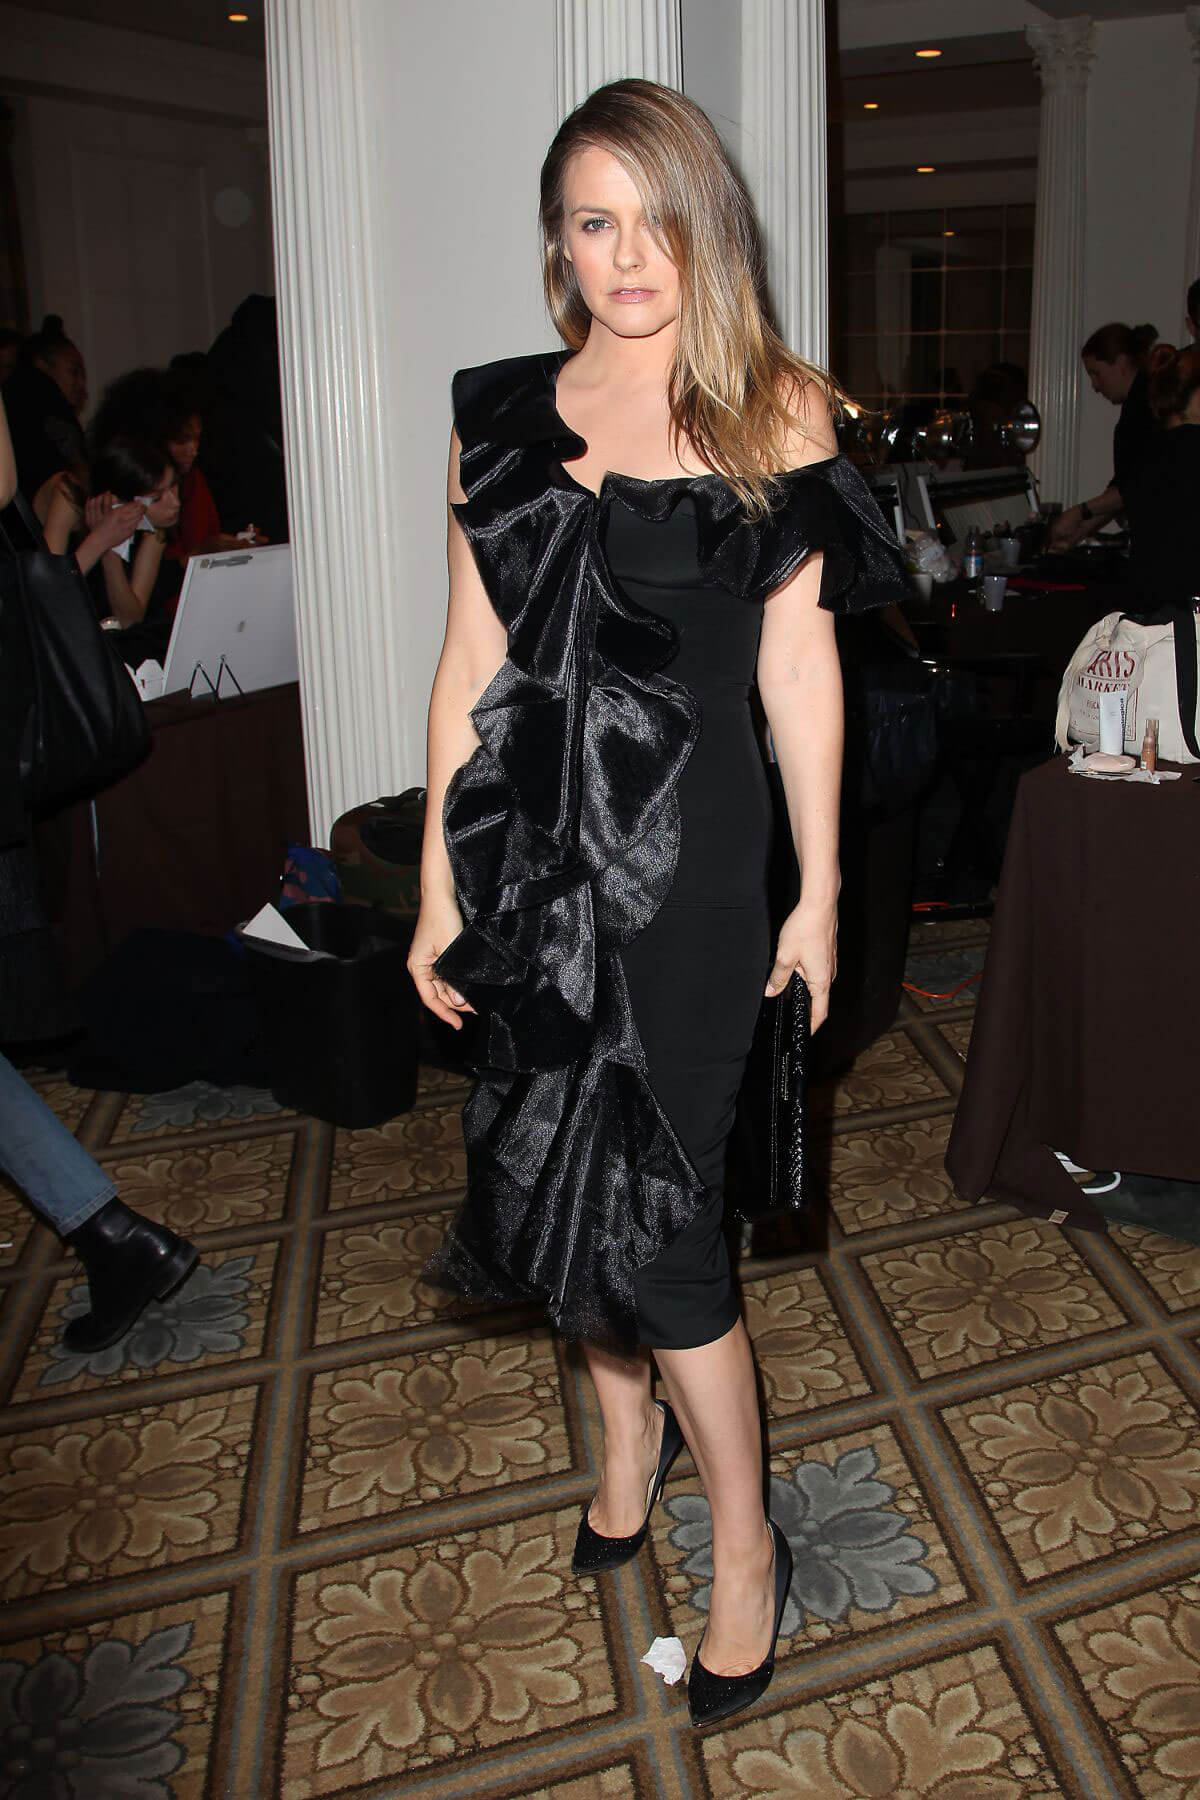 Alicia Silverstone at Christian Siriano Fashion Show in New York